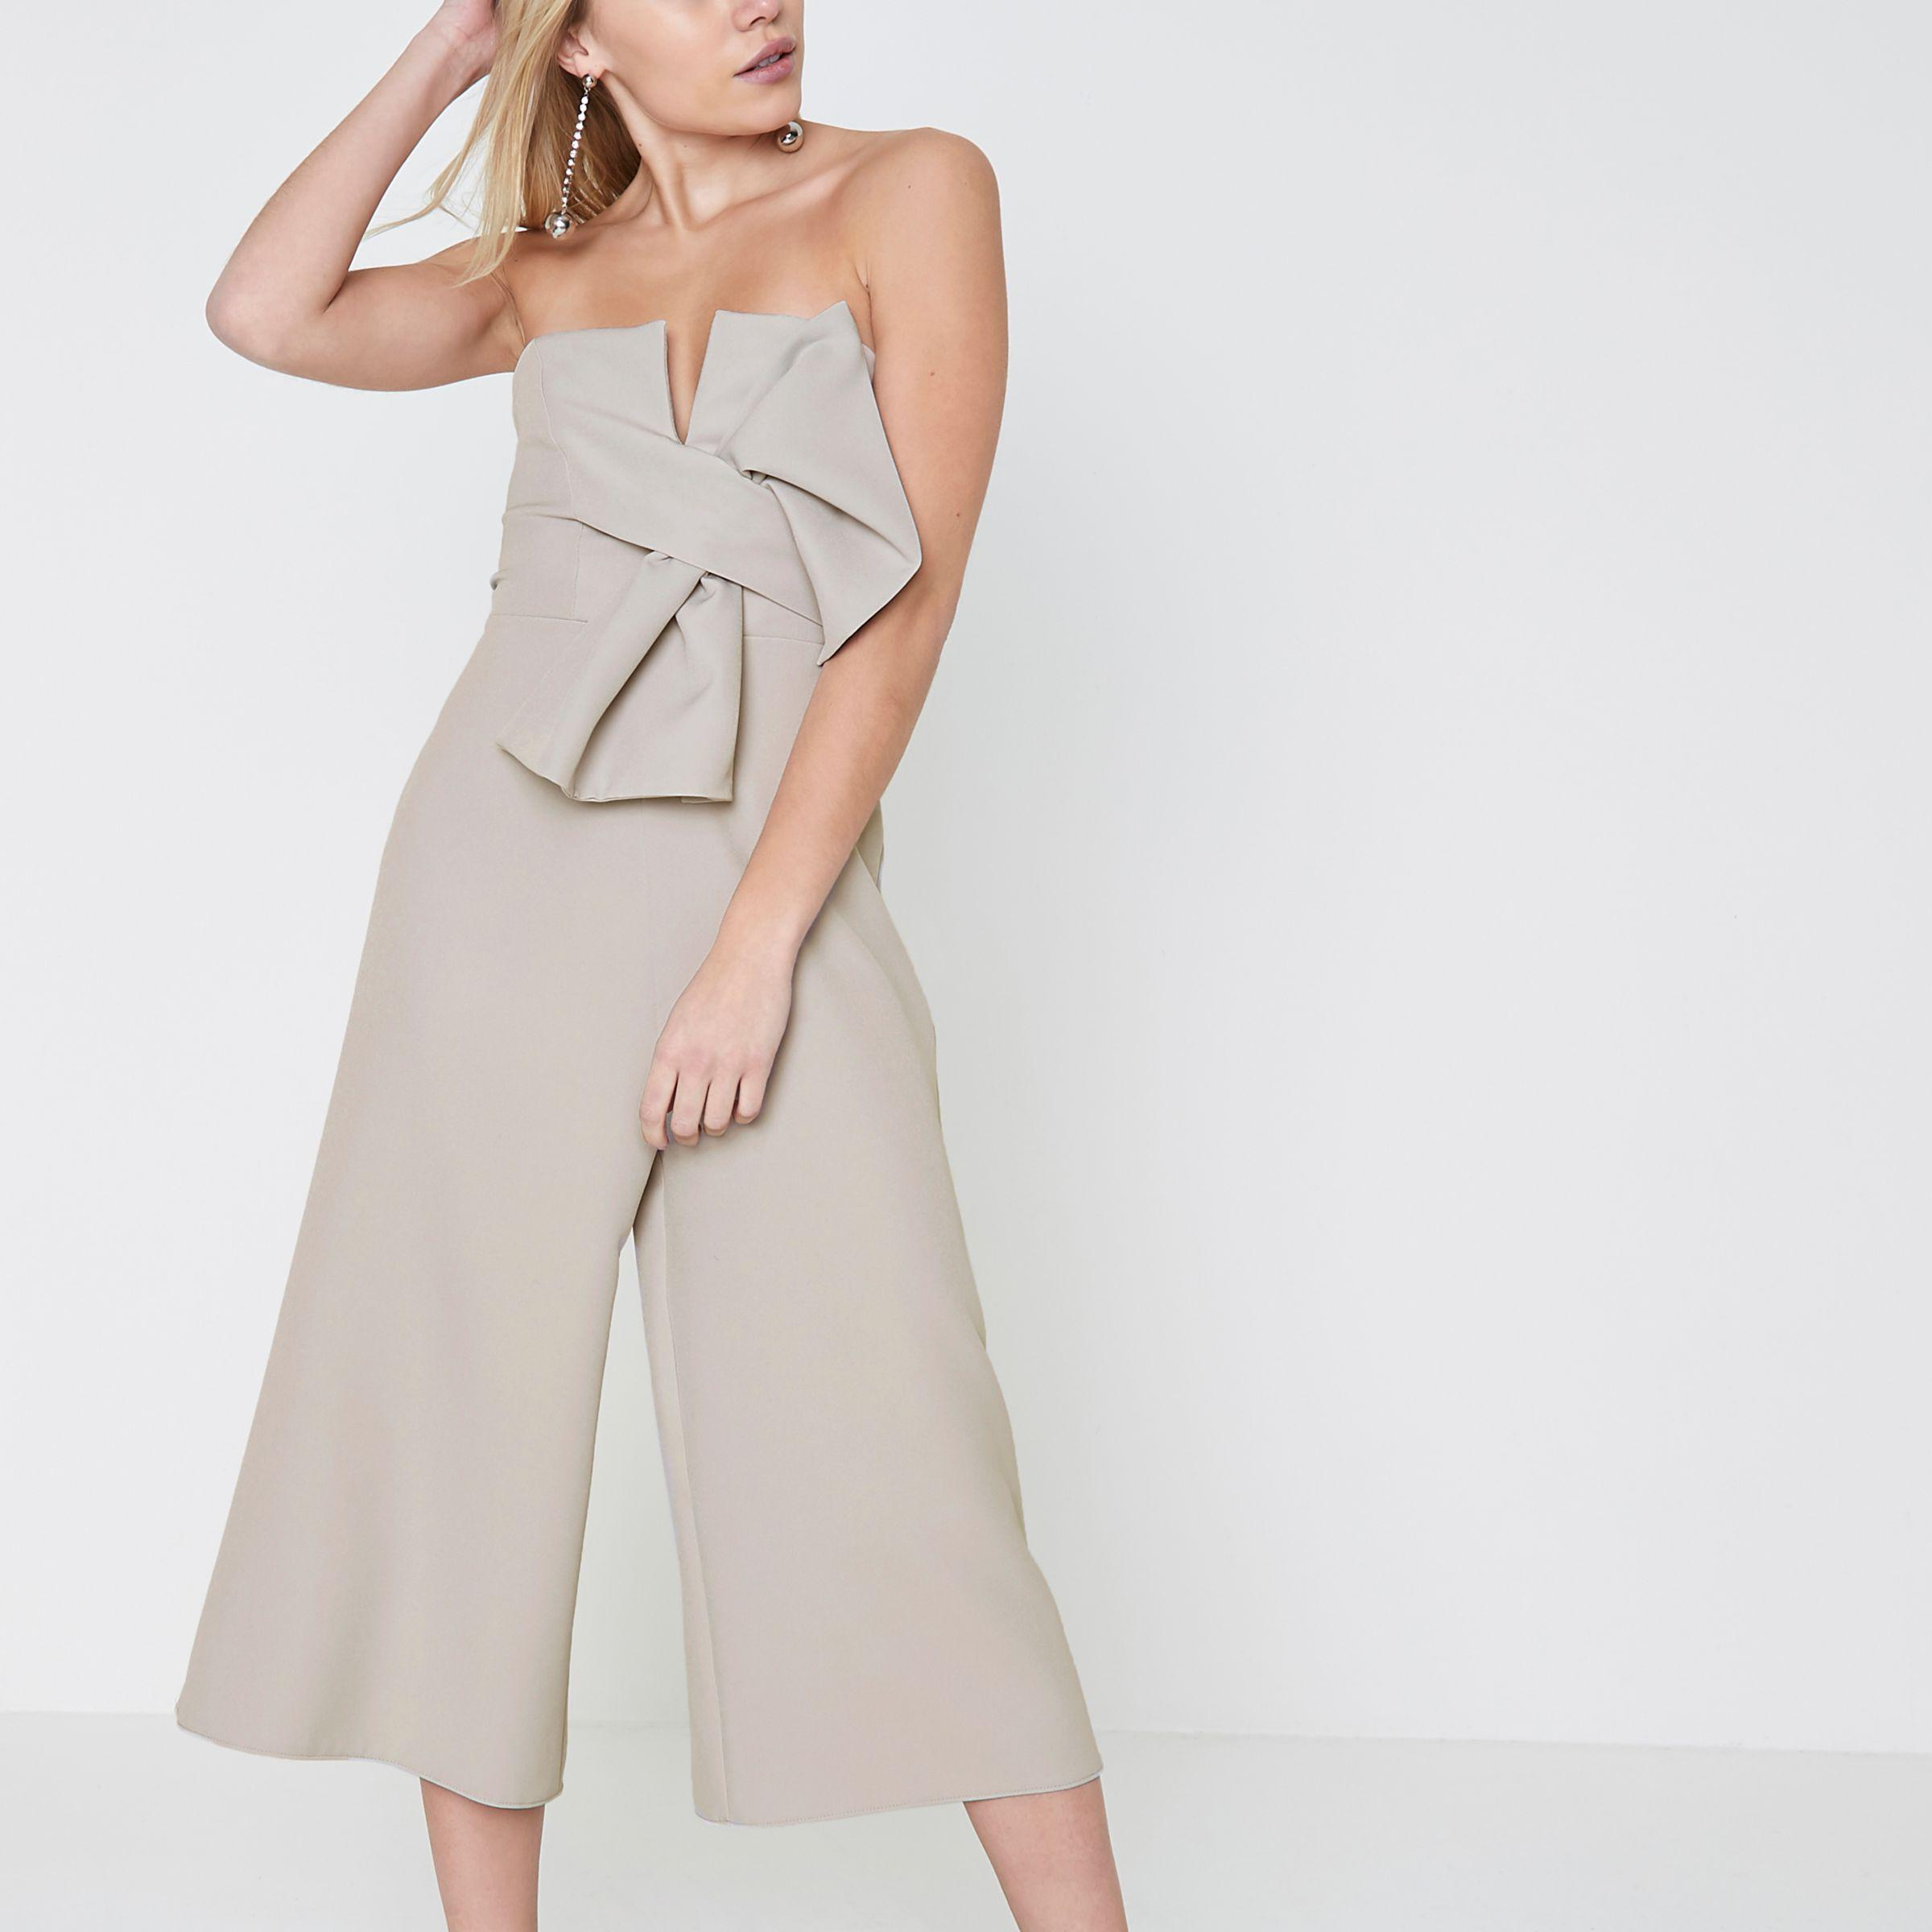 0f3ef261f8ce River Island Petite Grey Bow Bandeau Culotte Jumpsuit in Gray - Lyst